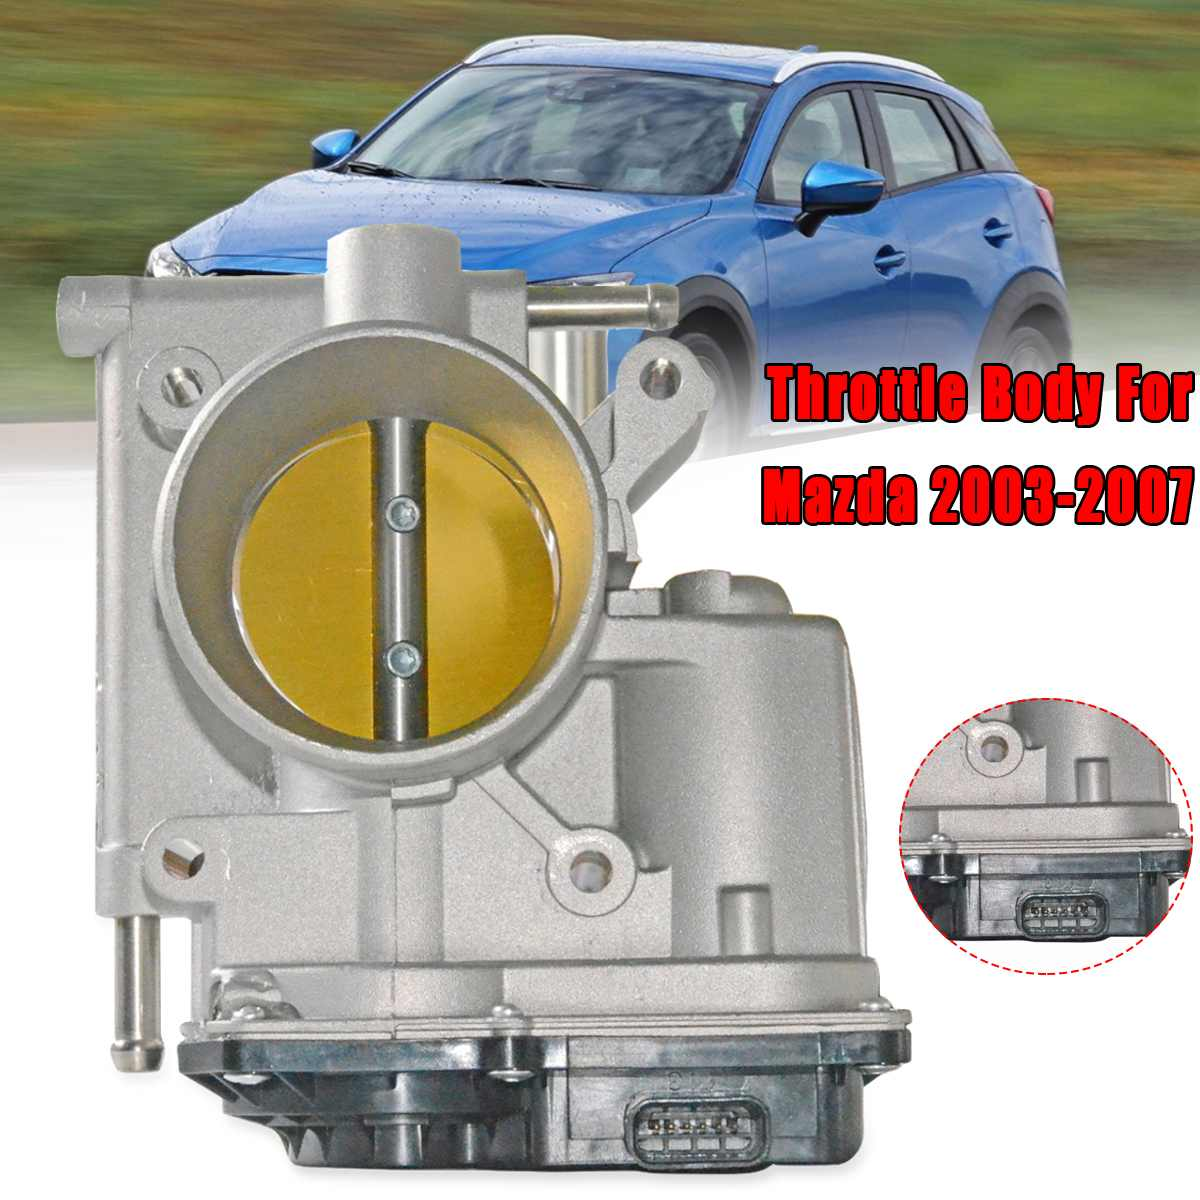 Throttle Body L32113640G E101284 For Mazda 3/5/6 03 07 2.0L & 2.3L Motor Metal Auto Replacement Parts Air Intake System